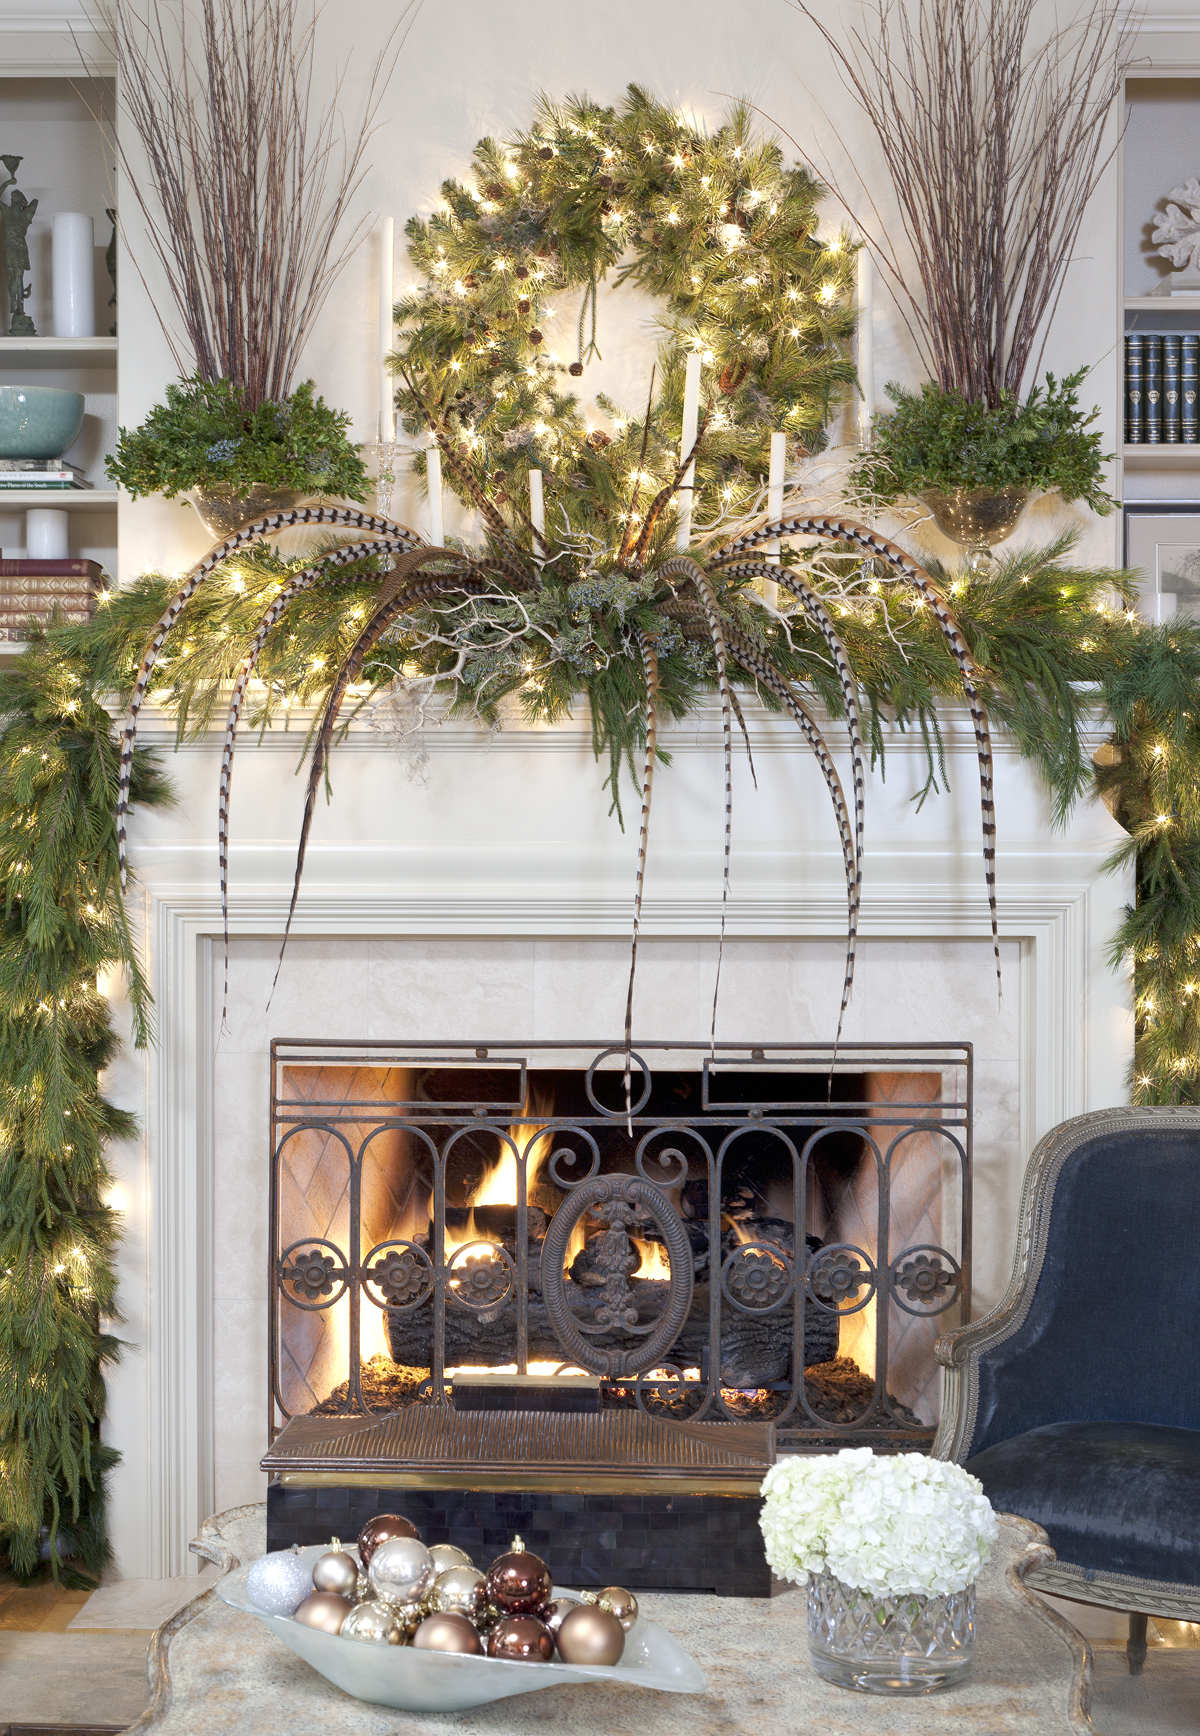 christmas decorations for mantels fireplace ideas with green garlands and romantic string light plus wreath and